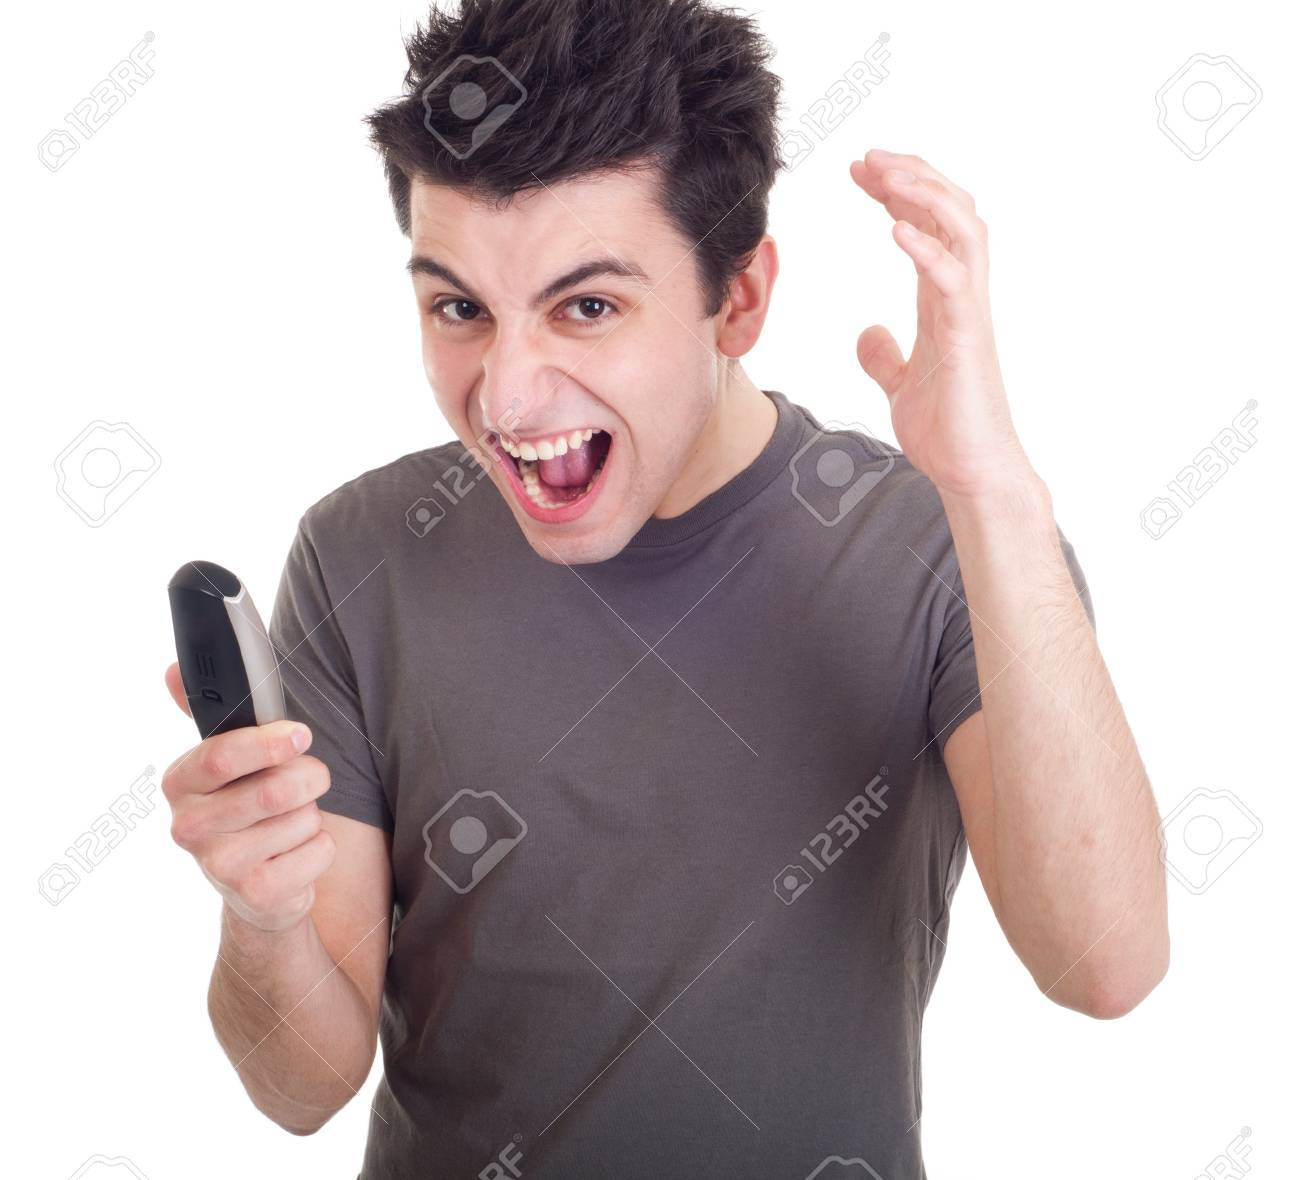 angry young man yelling at mobile phone isolated on white background Stock Photo - 9304629